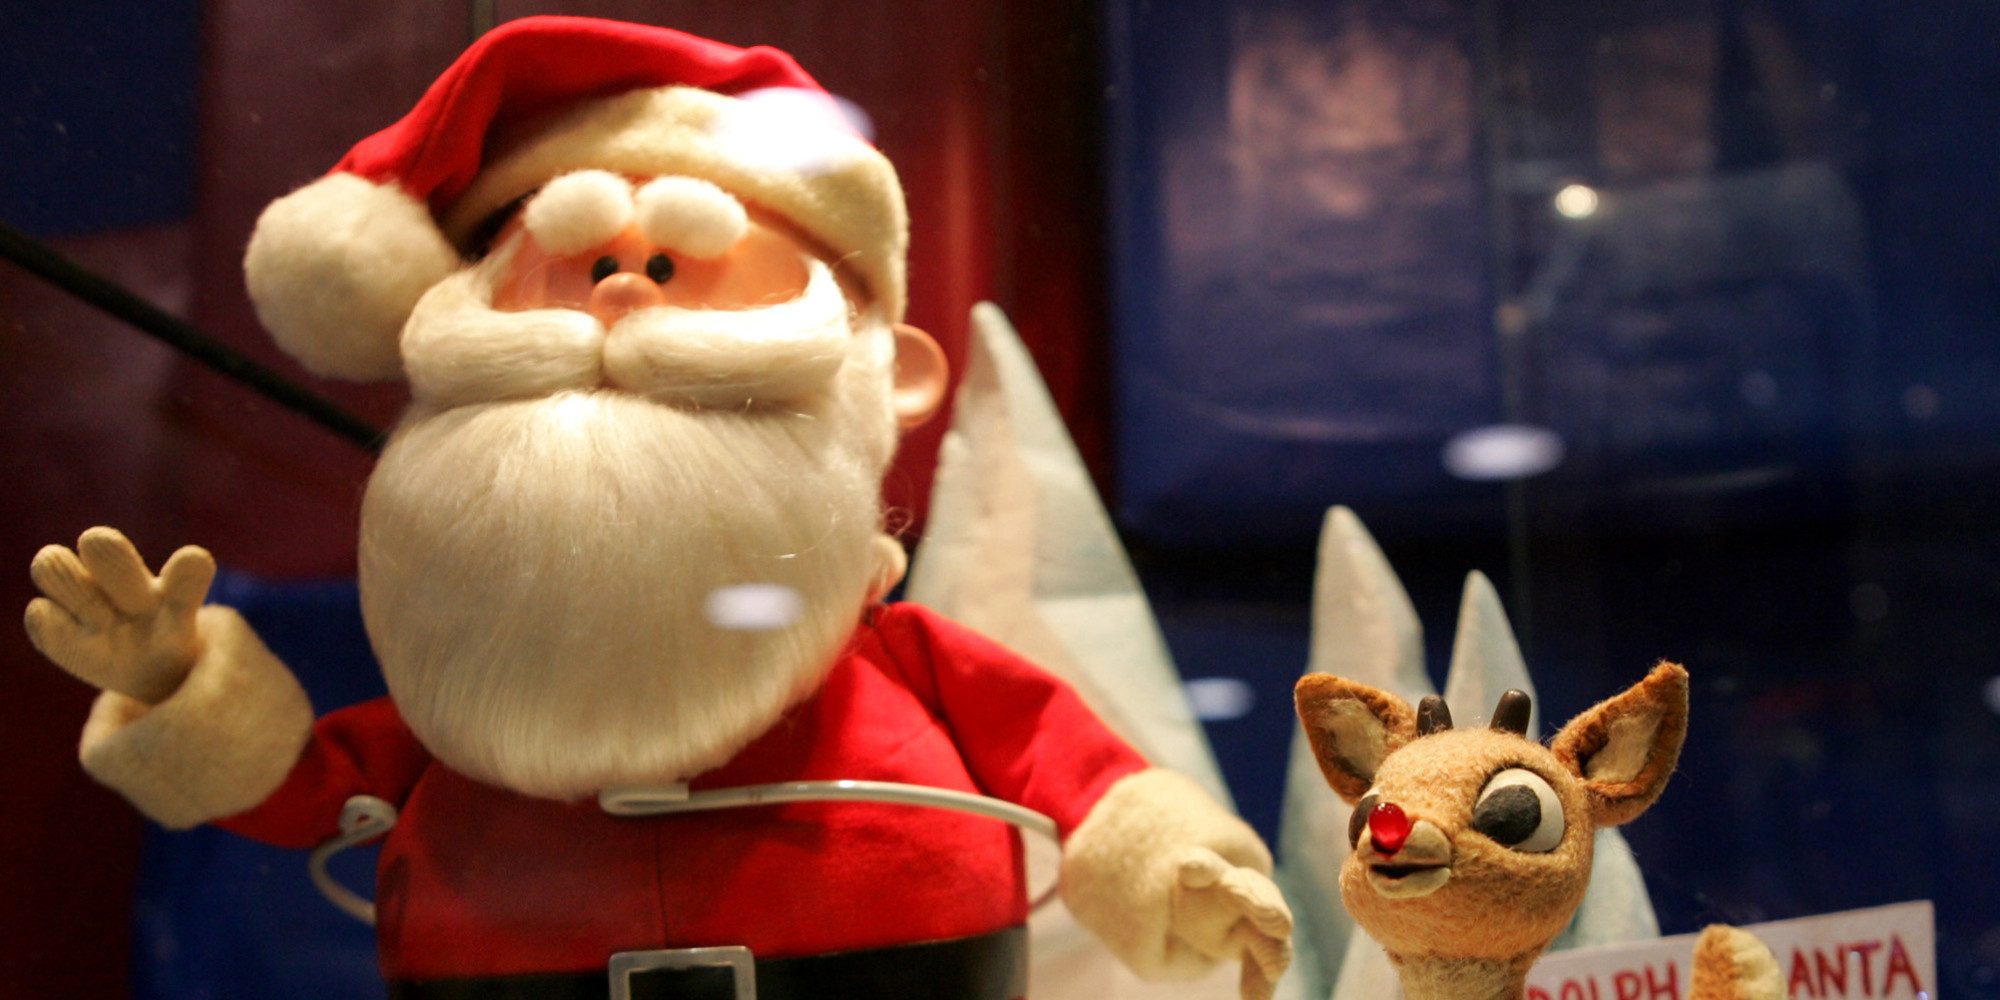 antiques roadshow appraises original claymation models of rudolph and santa found in attic video huffpost - Rudolph And Santa